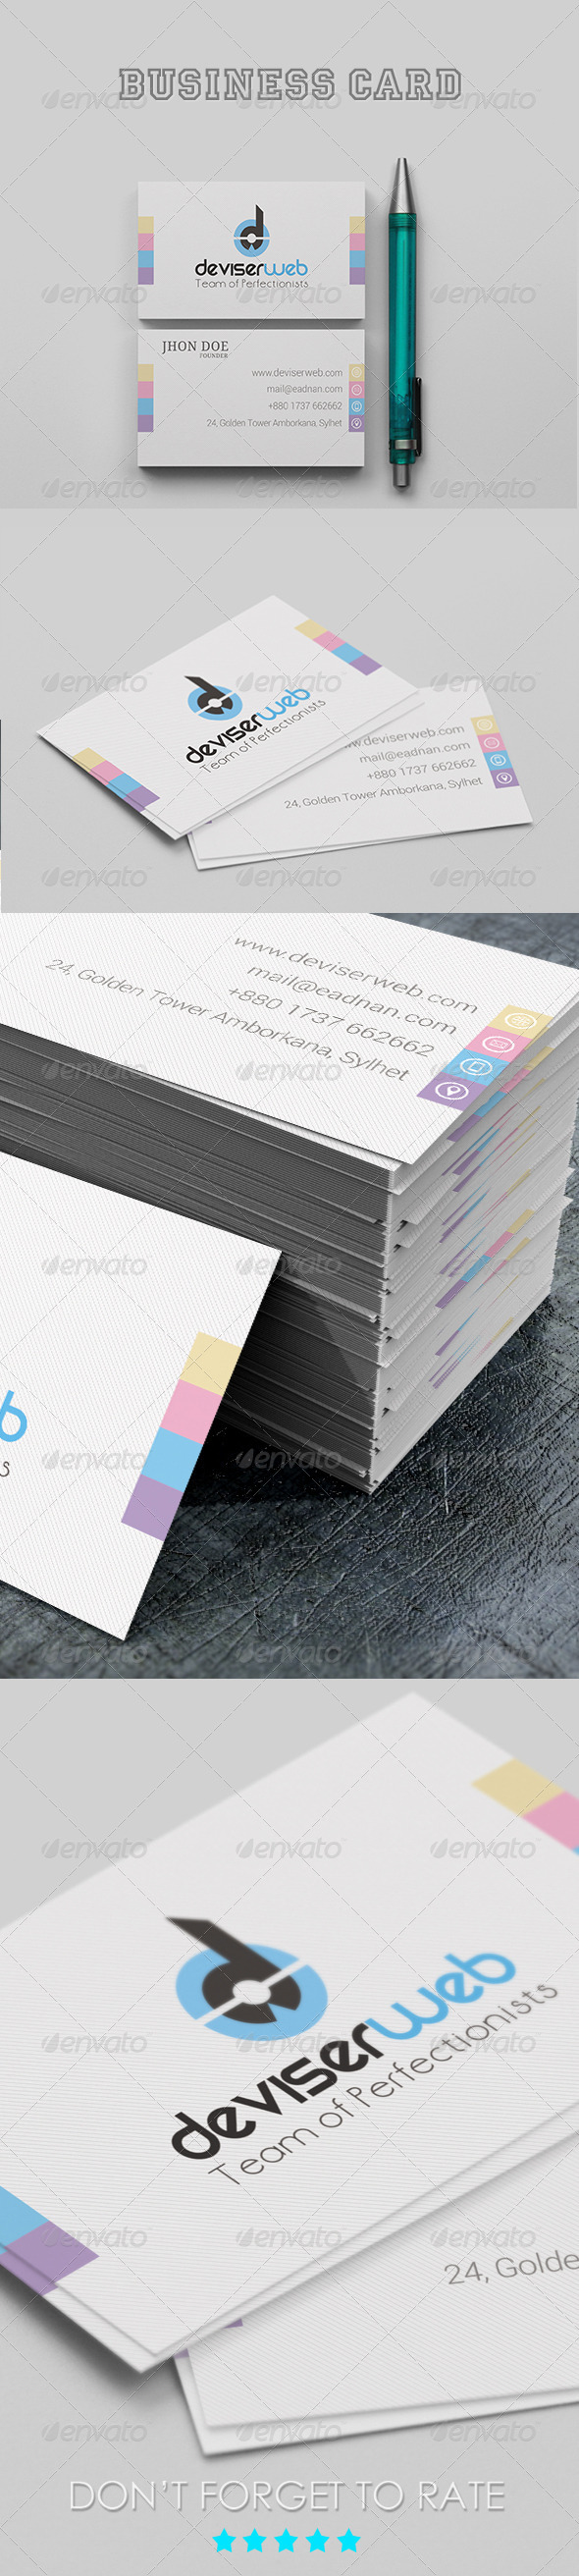 GraphicRiver Corporate Business Card 6725076